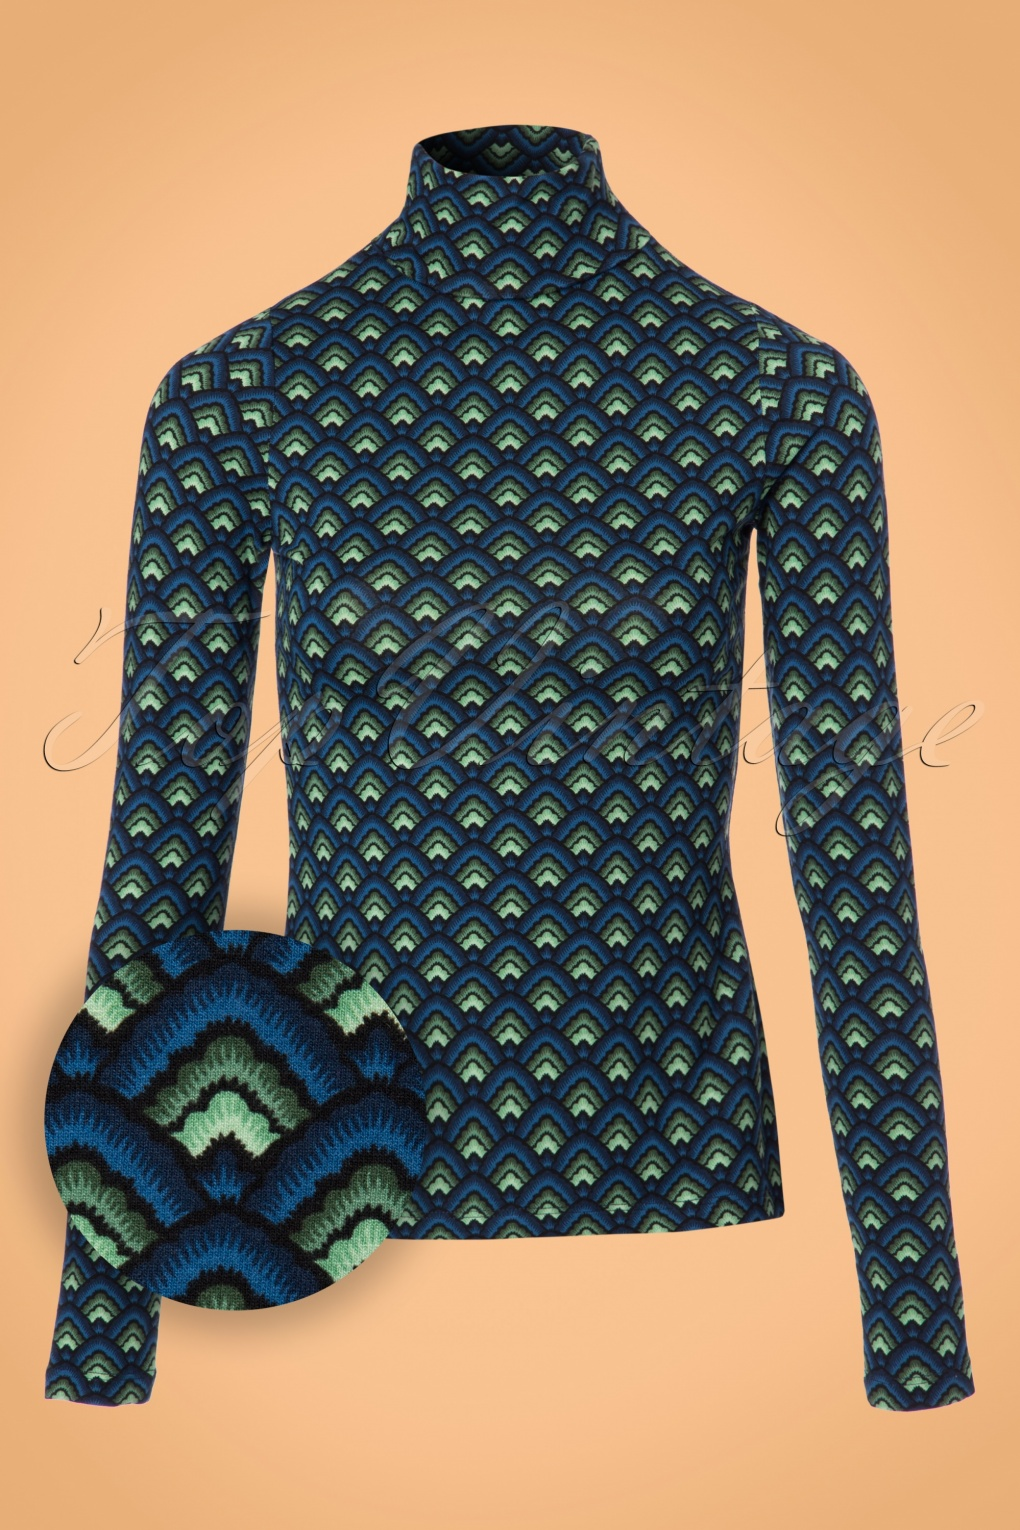 1960s Inspired Fashion: Recreate the Look 60s Betsy Fuji Rollneck Top in Dark Navy £48.22 AT vintagedancer.com